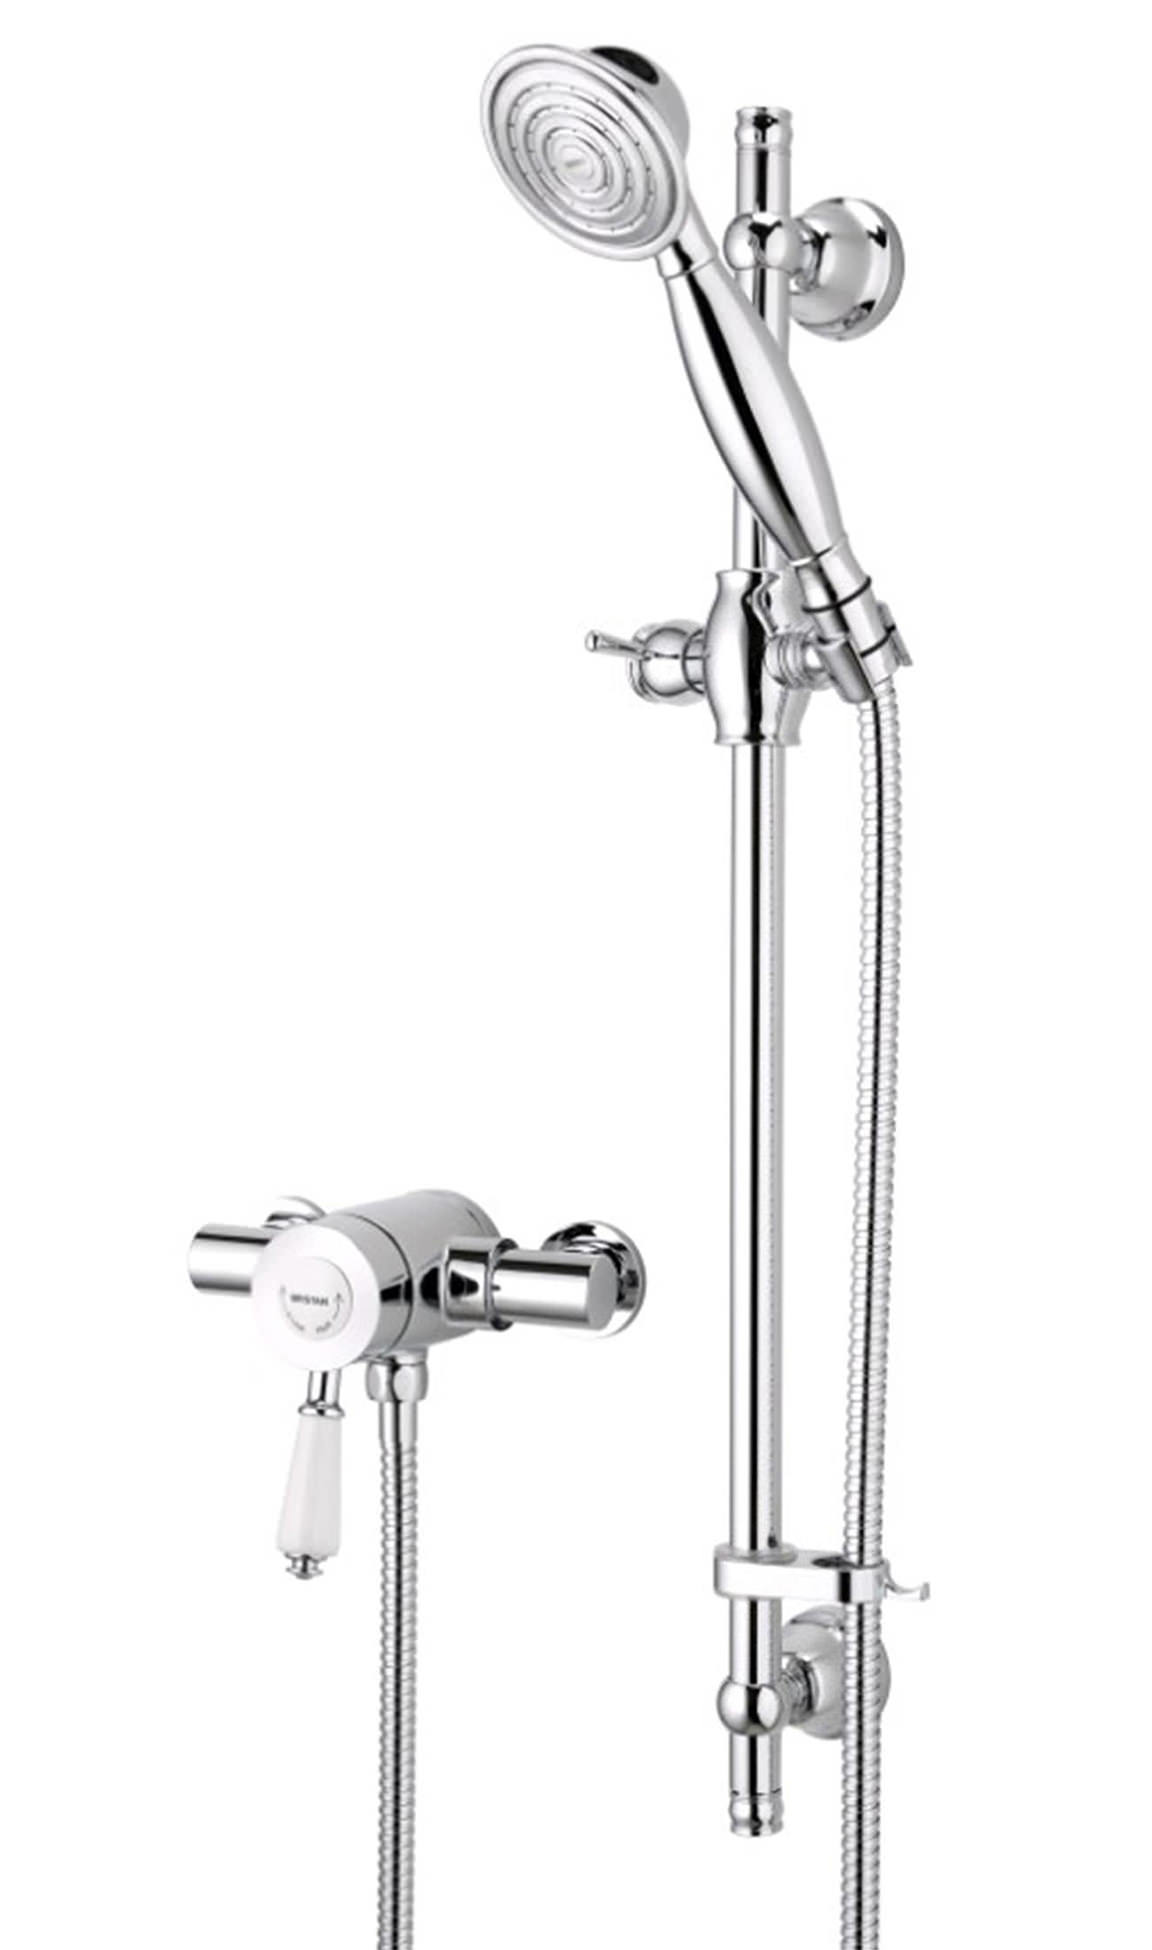 Bristan Colonial Thermostatic Shower Valve With Riser Kit